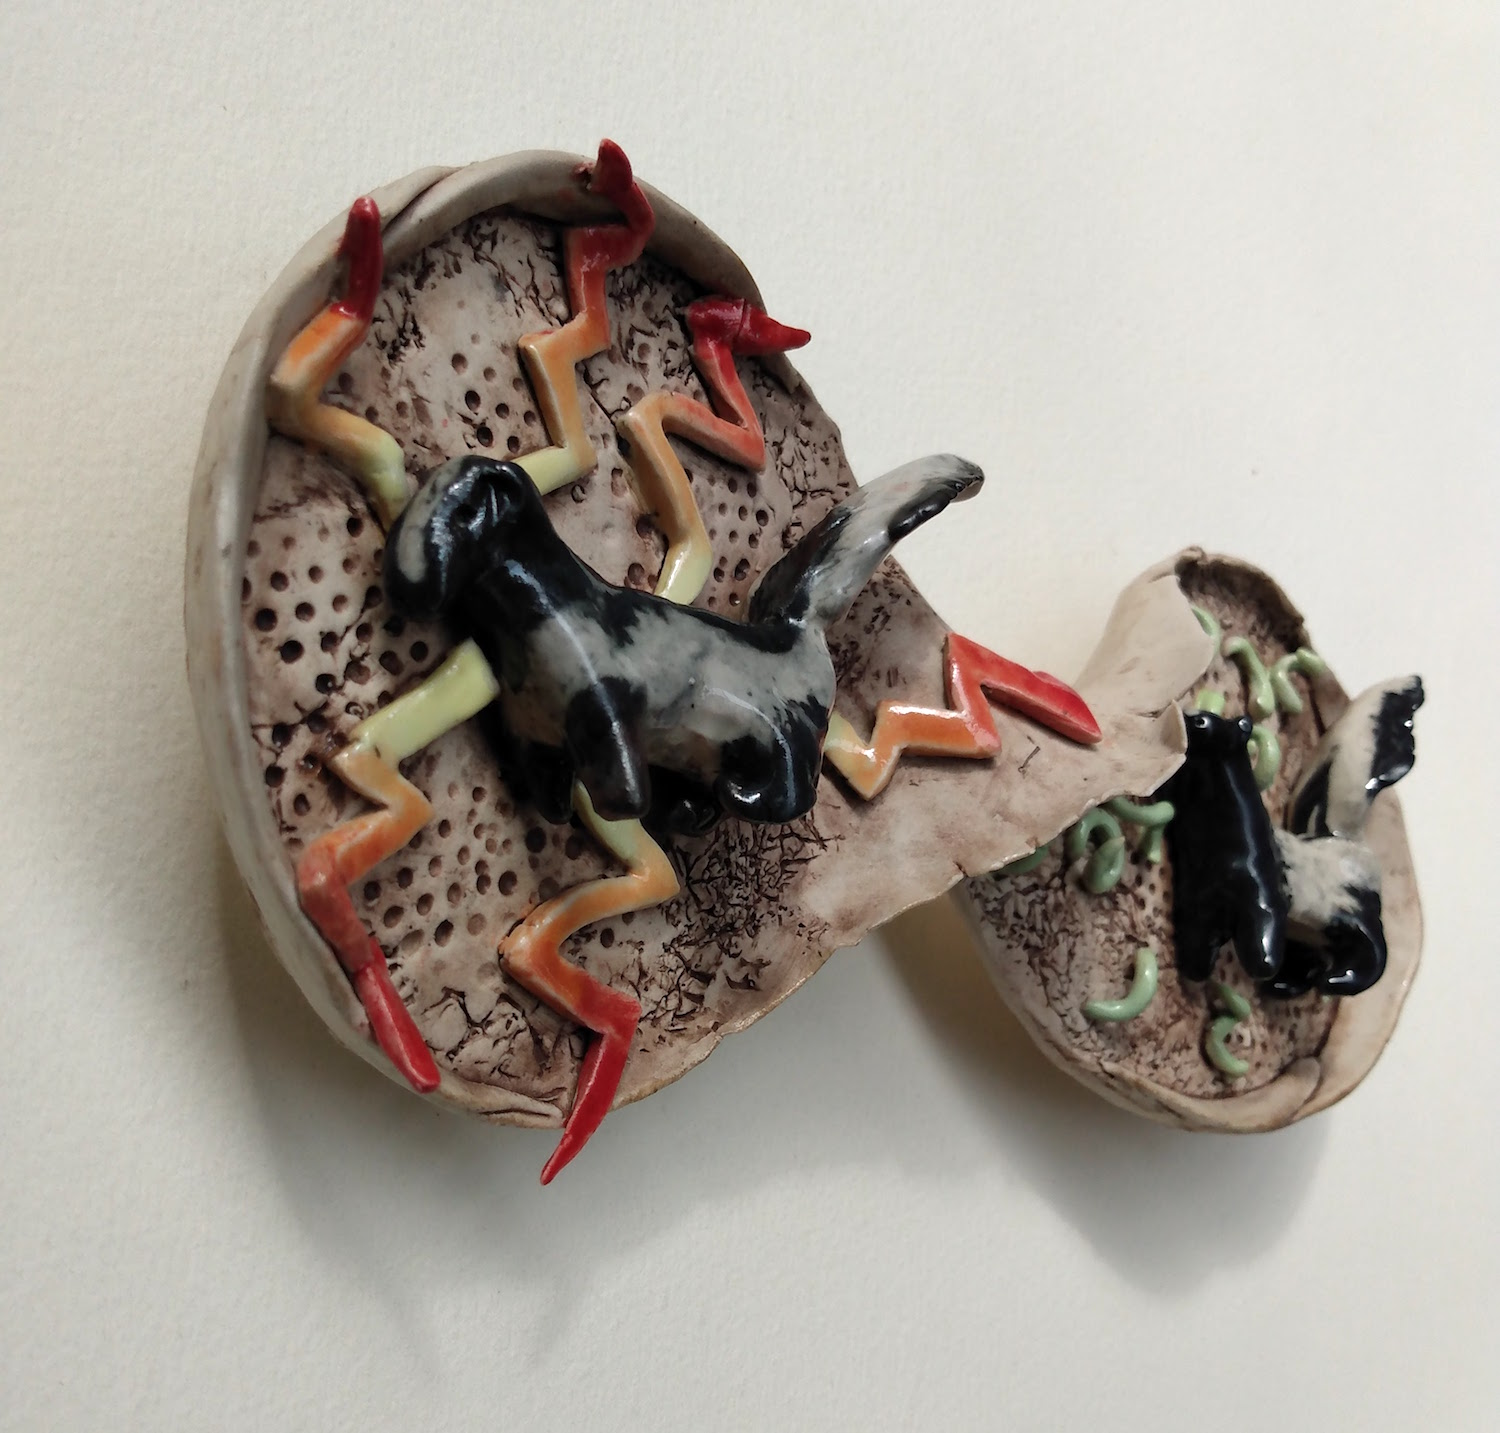 Alternate View, Dreamwork, Healing from shame, ceramic relief sculpture, wall hung, indoor, outdoor